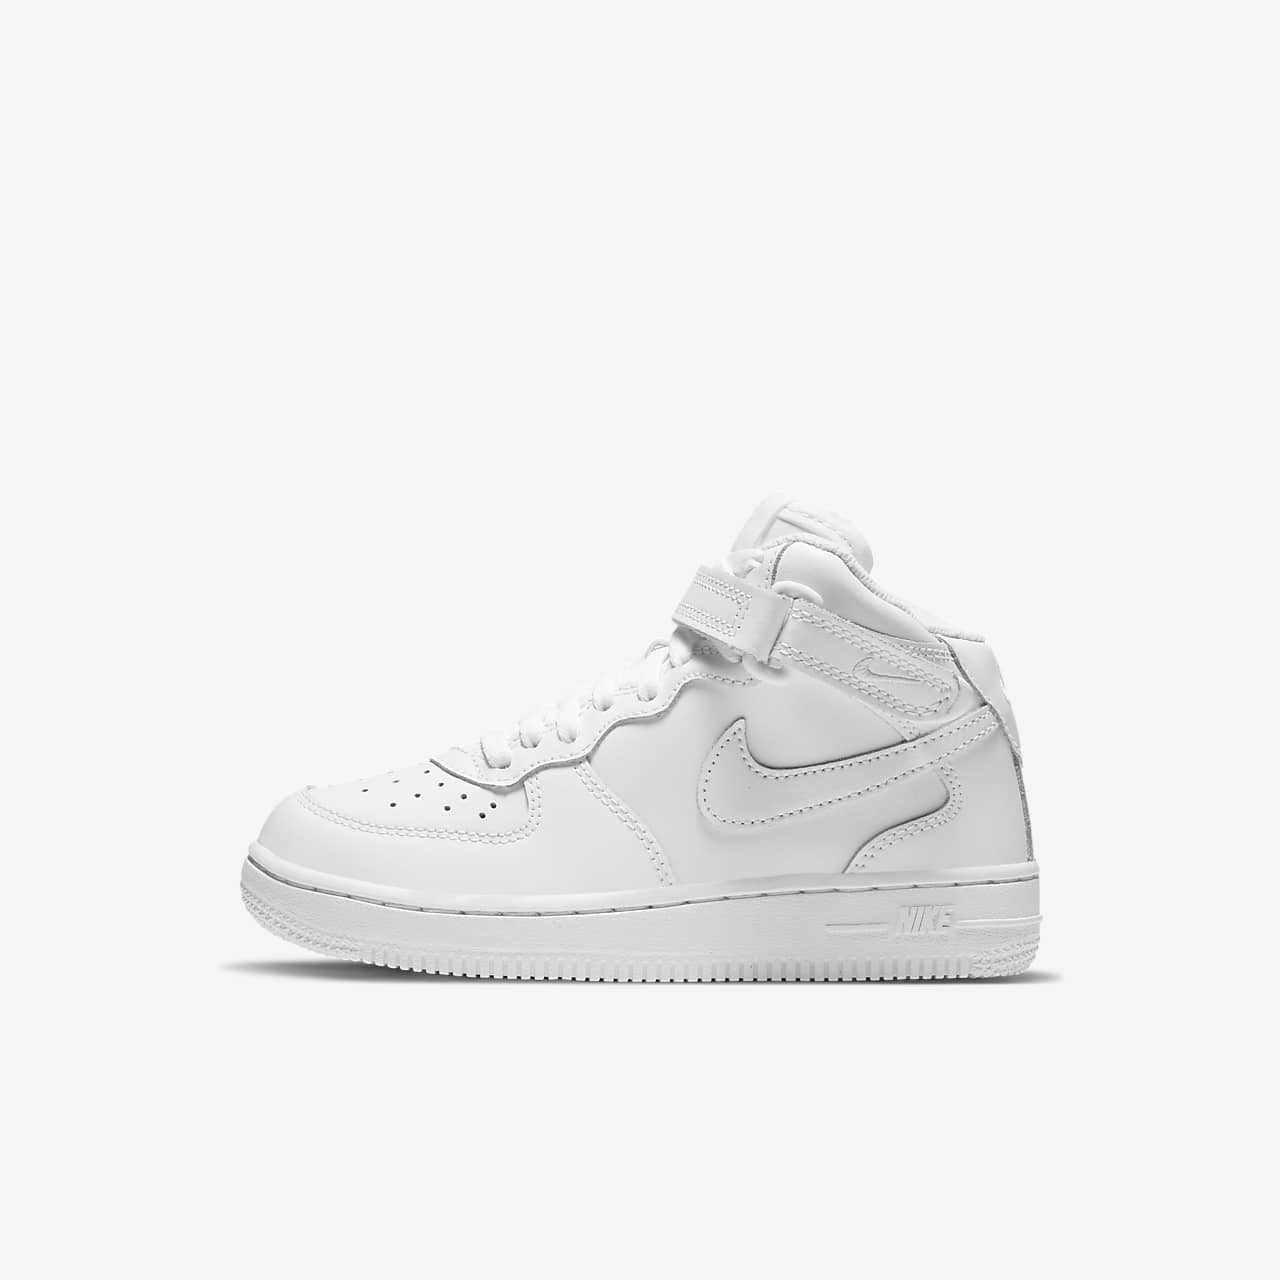 6571331277f72e Nike Air Force 1 Mid Little Kids  Shoe. Nike.com